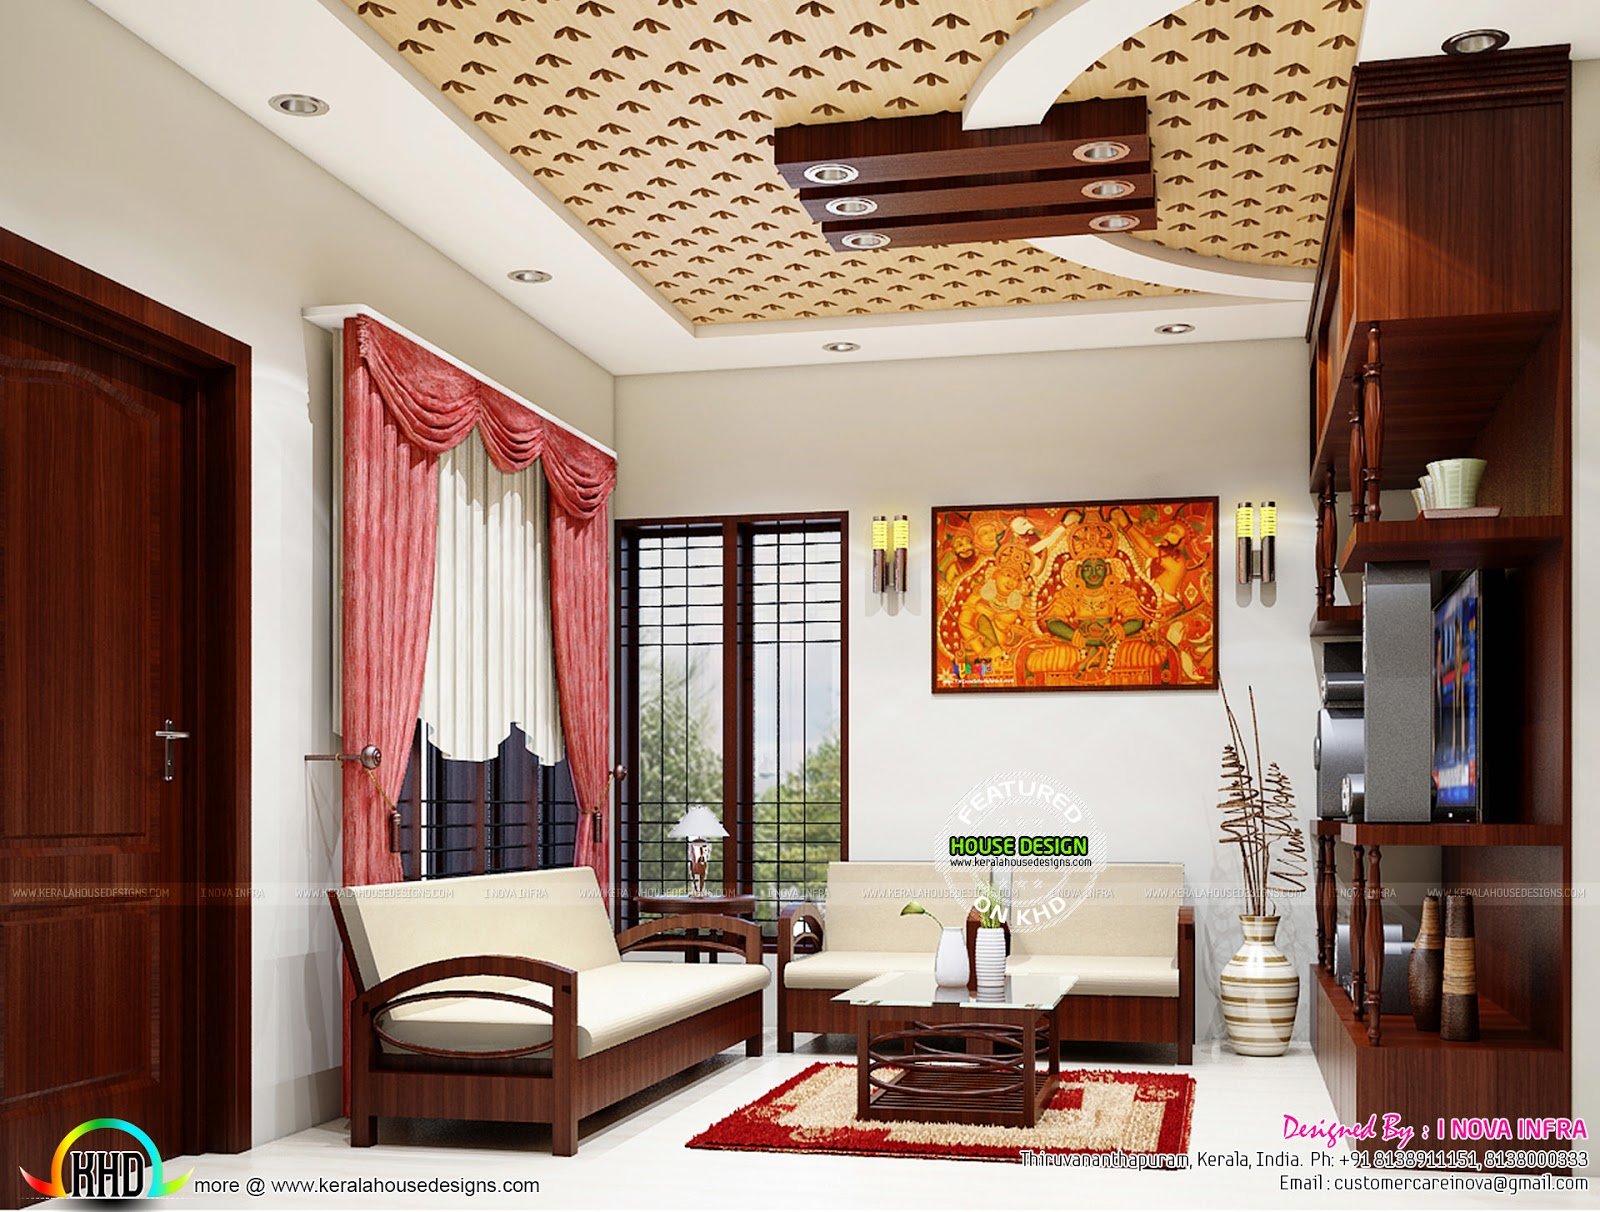 Kerala traditional interiors kerala home design and for House room design ideas